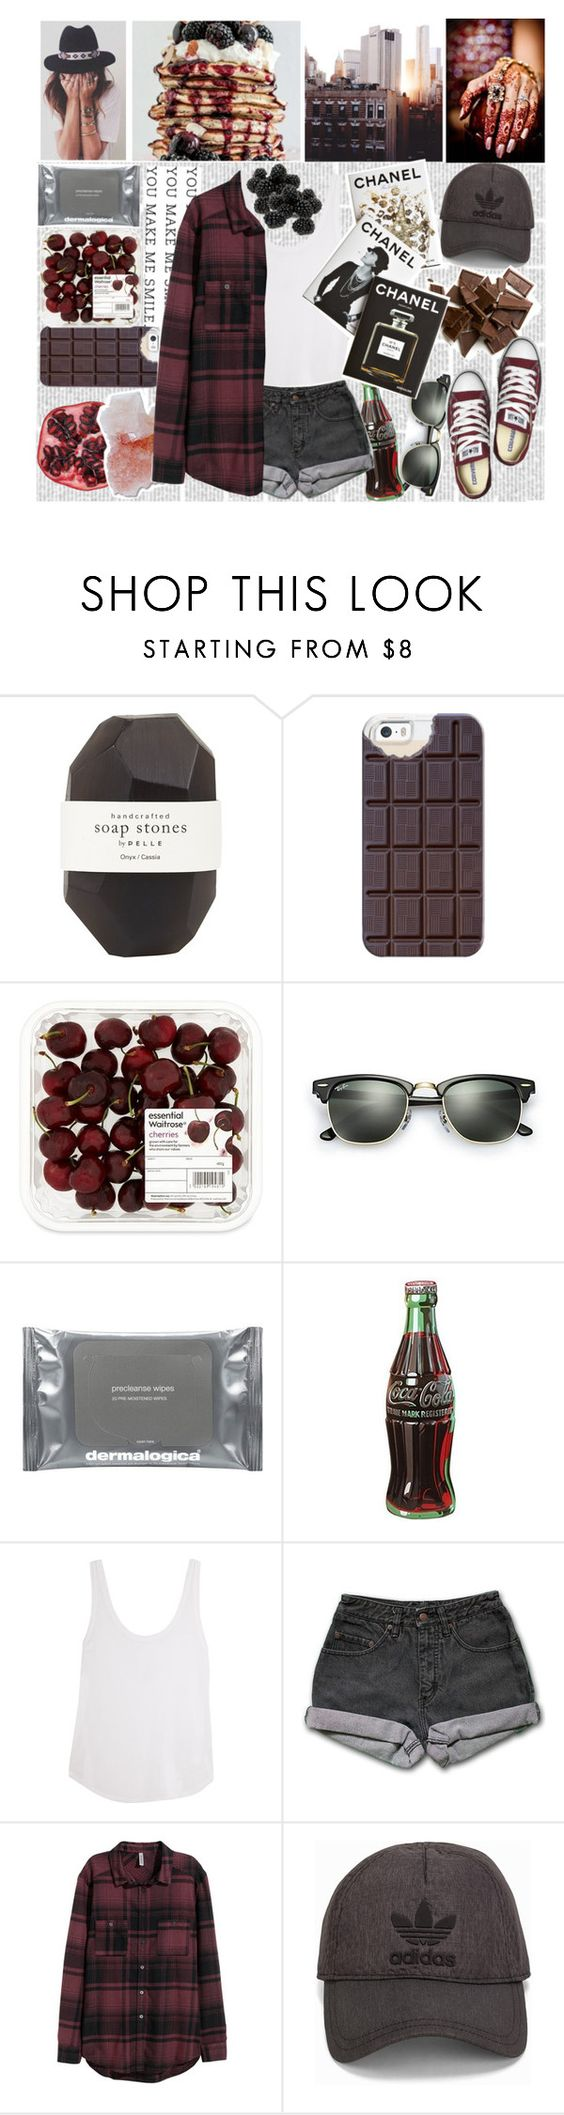 """You Can Have Me"" by nsrogsy3 ❤ liked on Polyvore featuring Pelle, Casetify, Ray-Ban, Dermalogica, Retrò, Frame Denim, PèPè, H&M, adidas Originals and Converse"